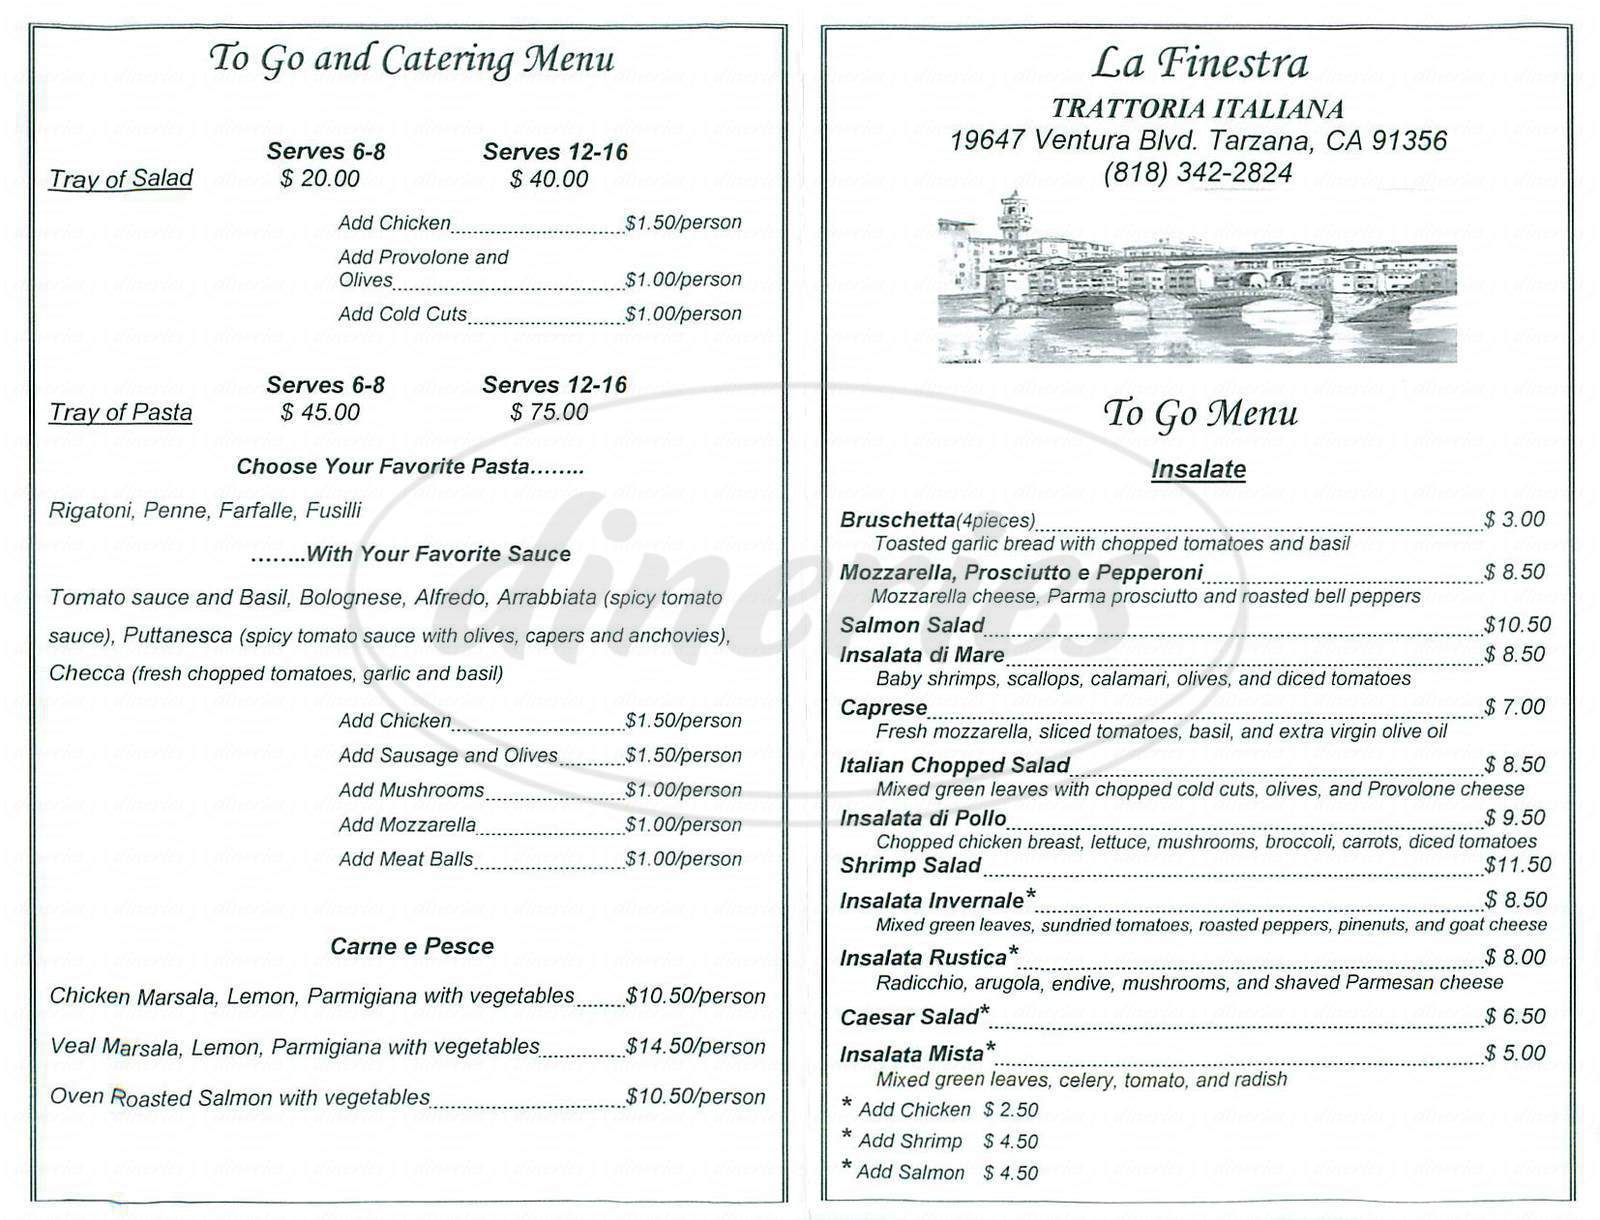 menu for La Finestra